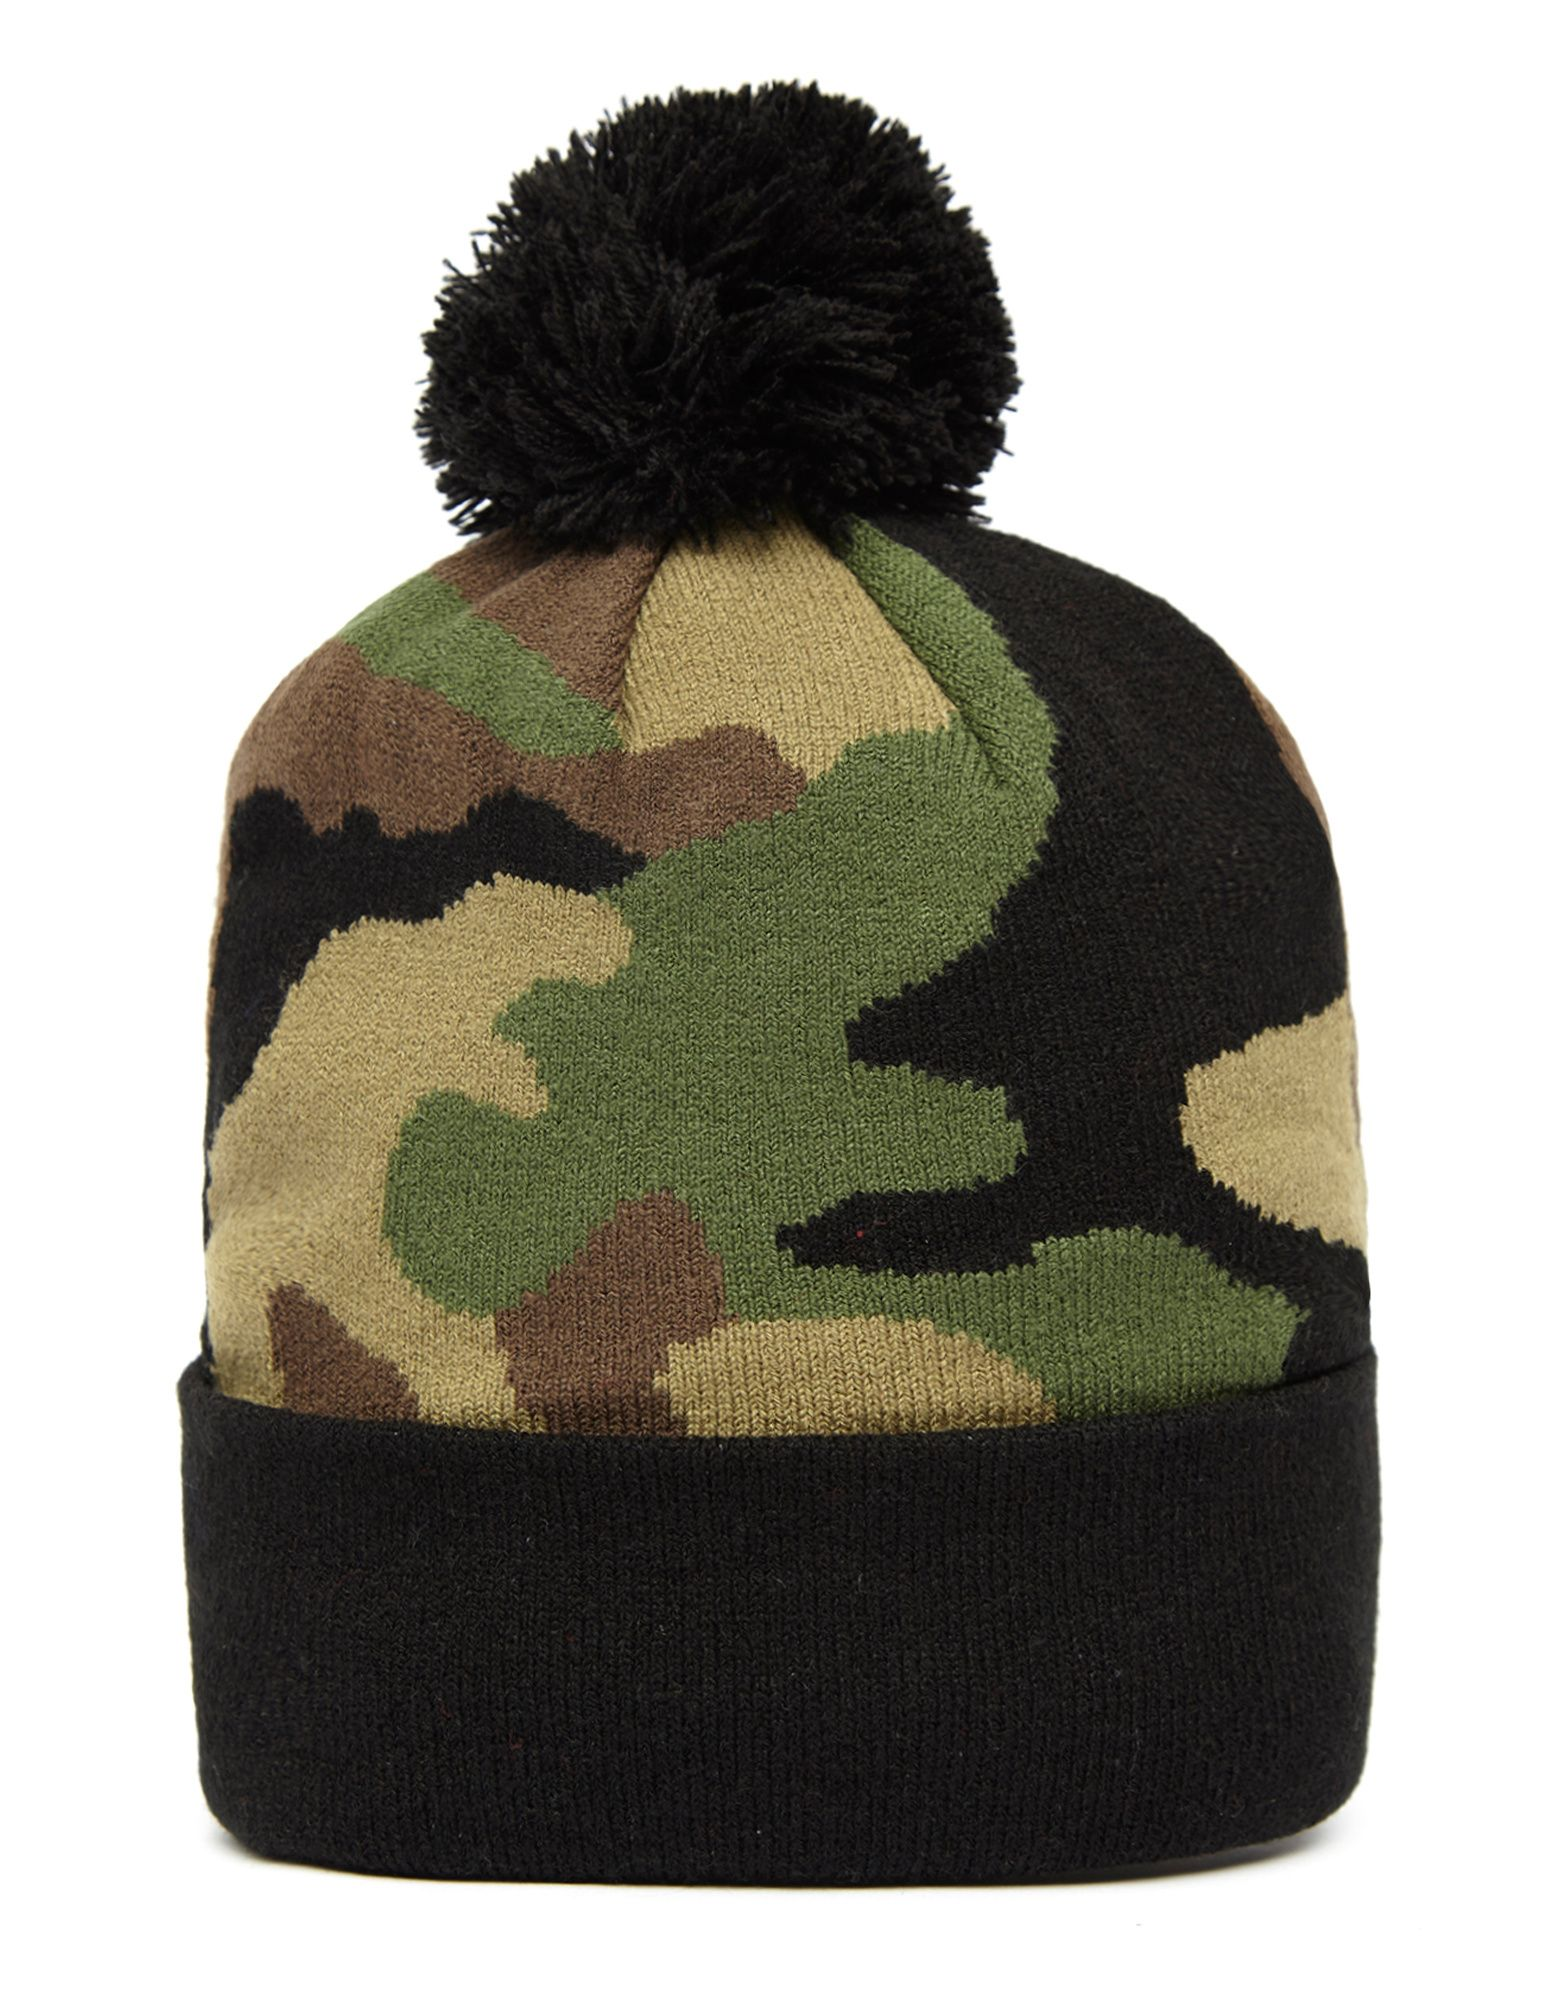 New Era NFL Oakland Raiders Camouflage Bobble Hat